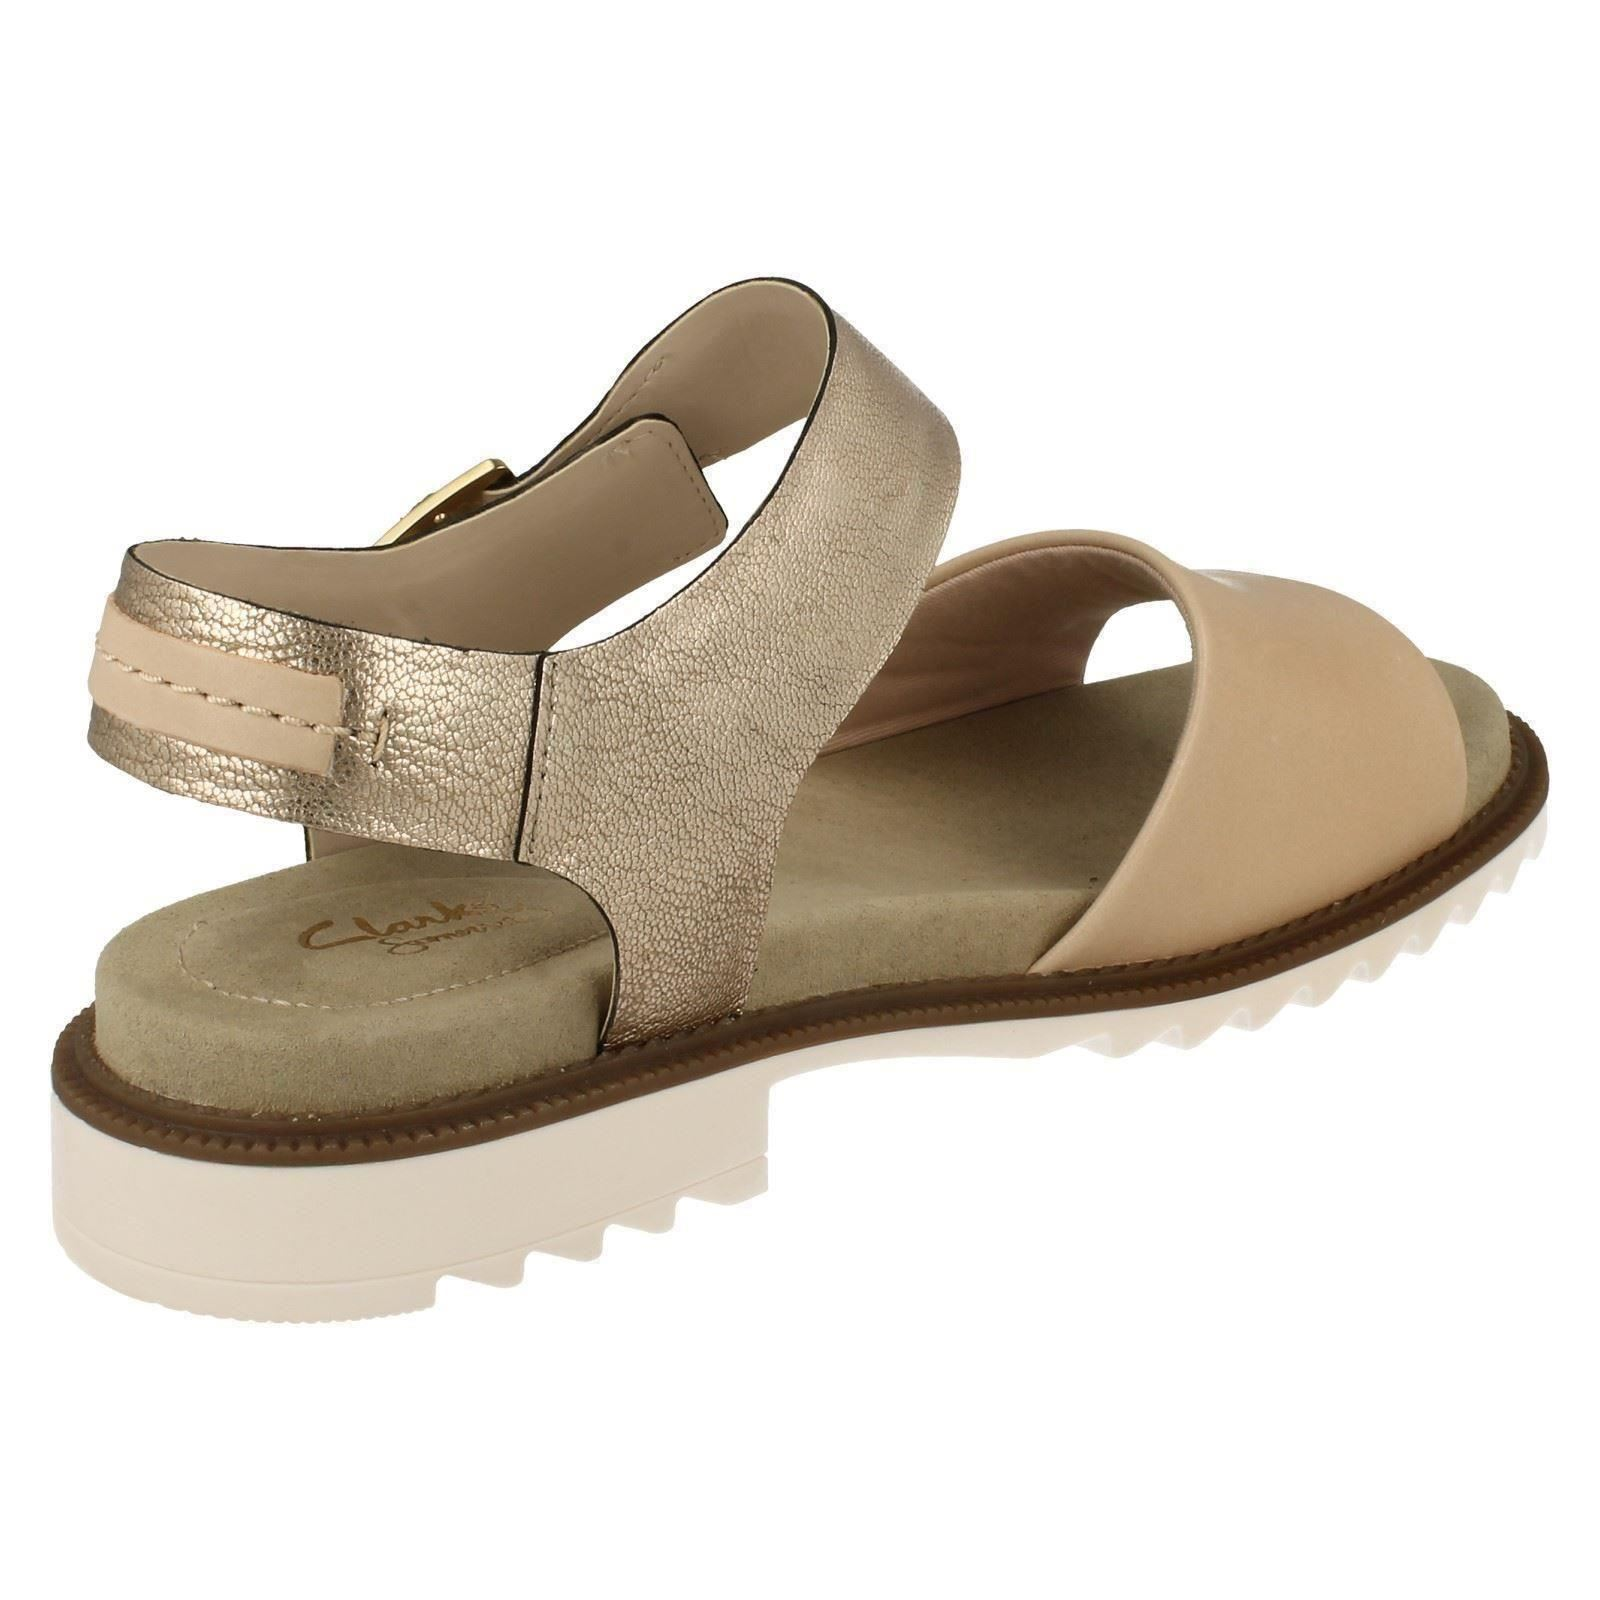 726b9058532e Ladies Clarks Open-toe Summer Sandal FERNI Fame UK 4 Nude Combi D. About  this product. Picture 1 of 10  Picture 2 of 10  Picture 3 of 10  Picture 4  of 10